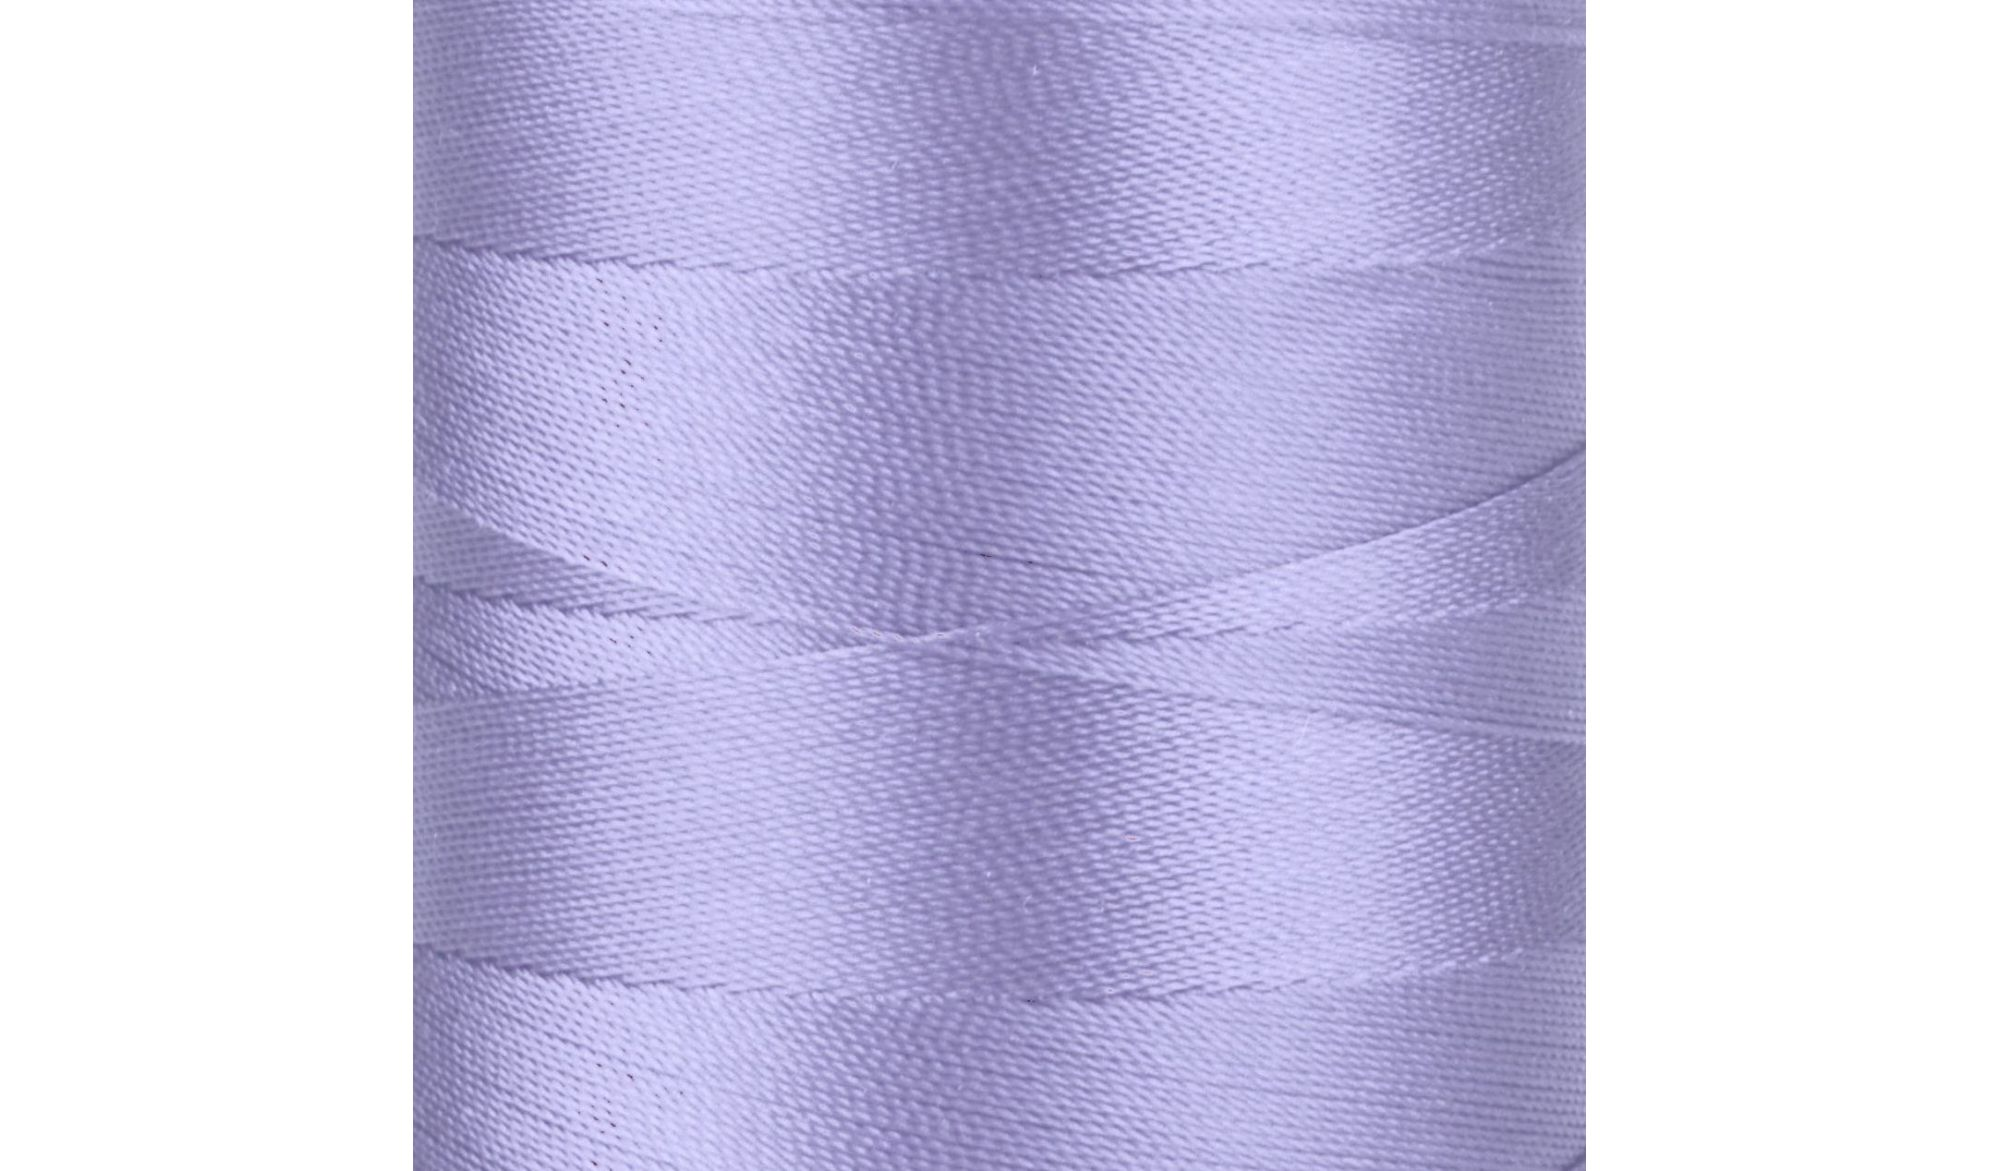 NICI 1000 10 ATOS 114 - Threads alt_nici_kolor_114 Replaces sewing Decorative quilting - Colour